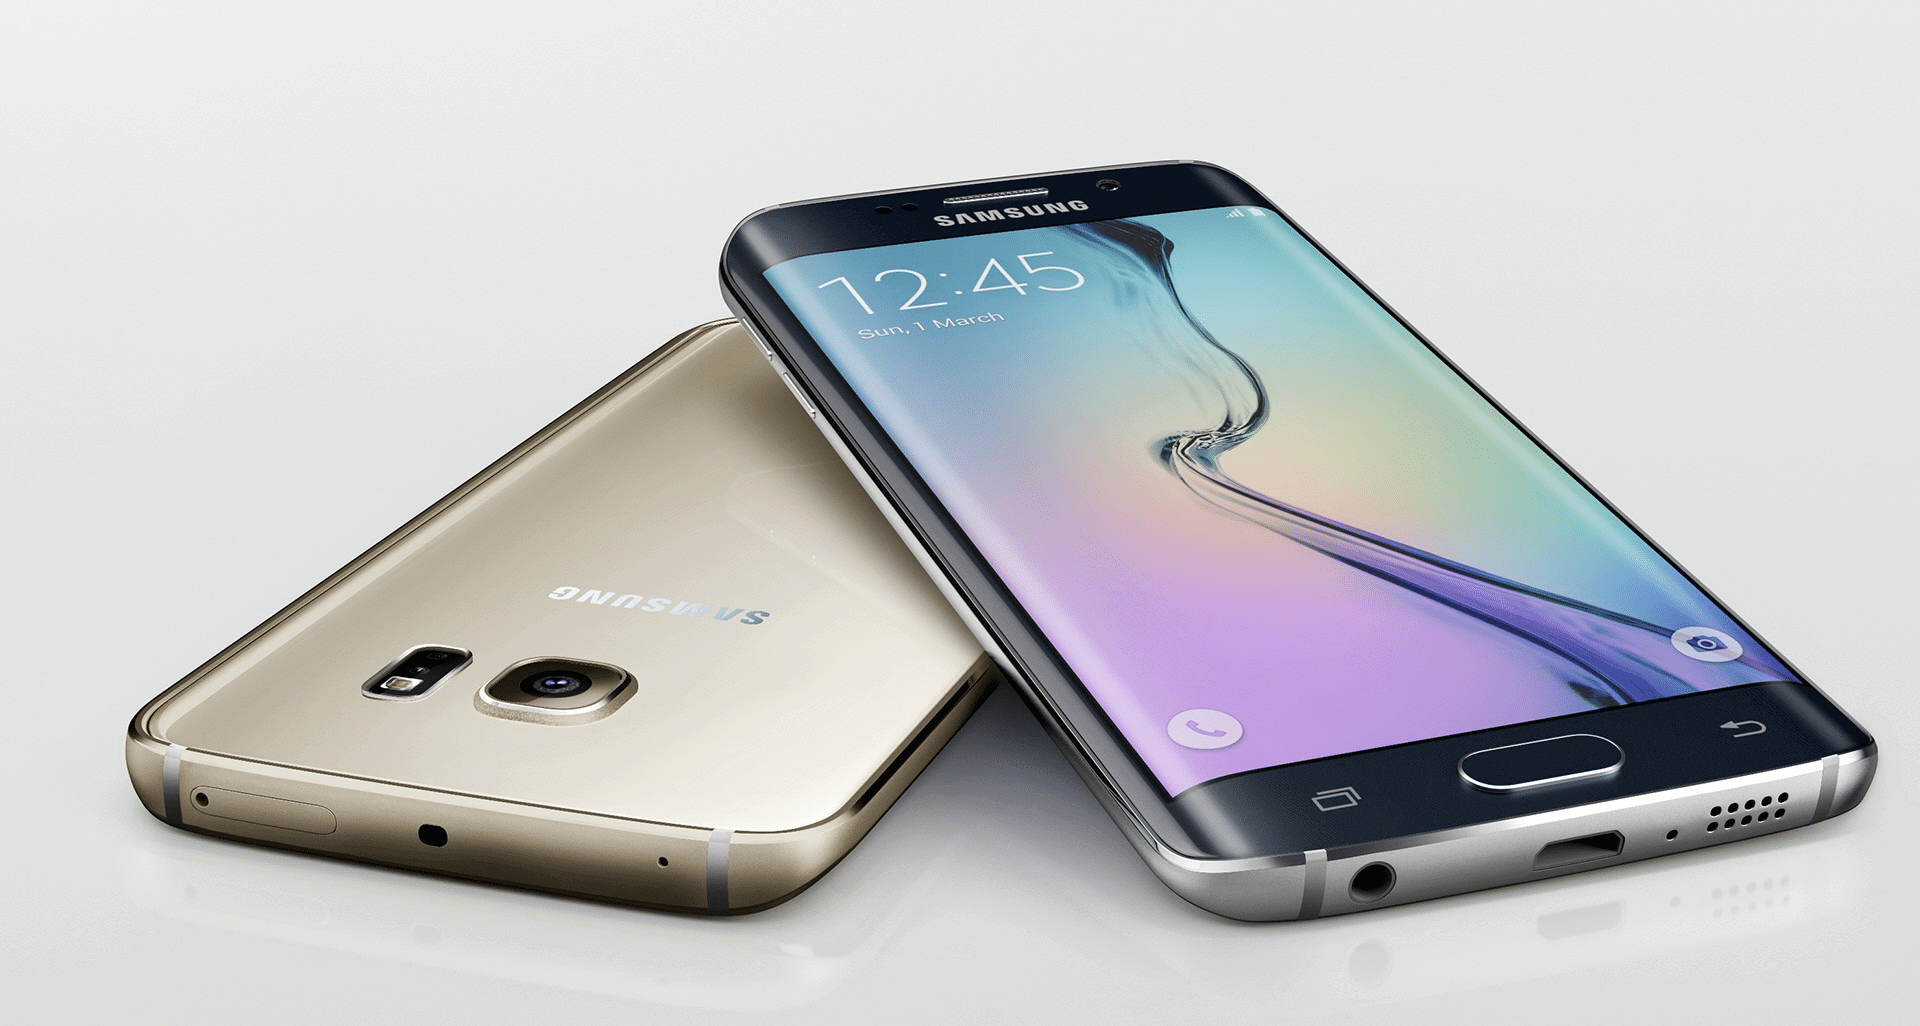 How to Install Android 7.1 Helios Nougat 7.1 ROM on Galaxy S7 Edge G935F 1